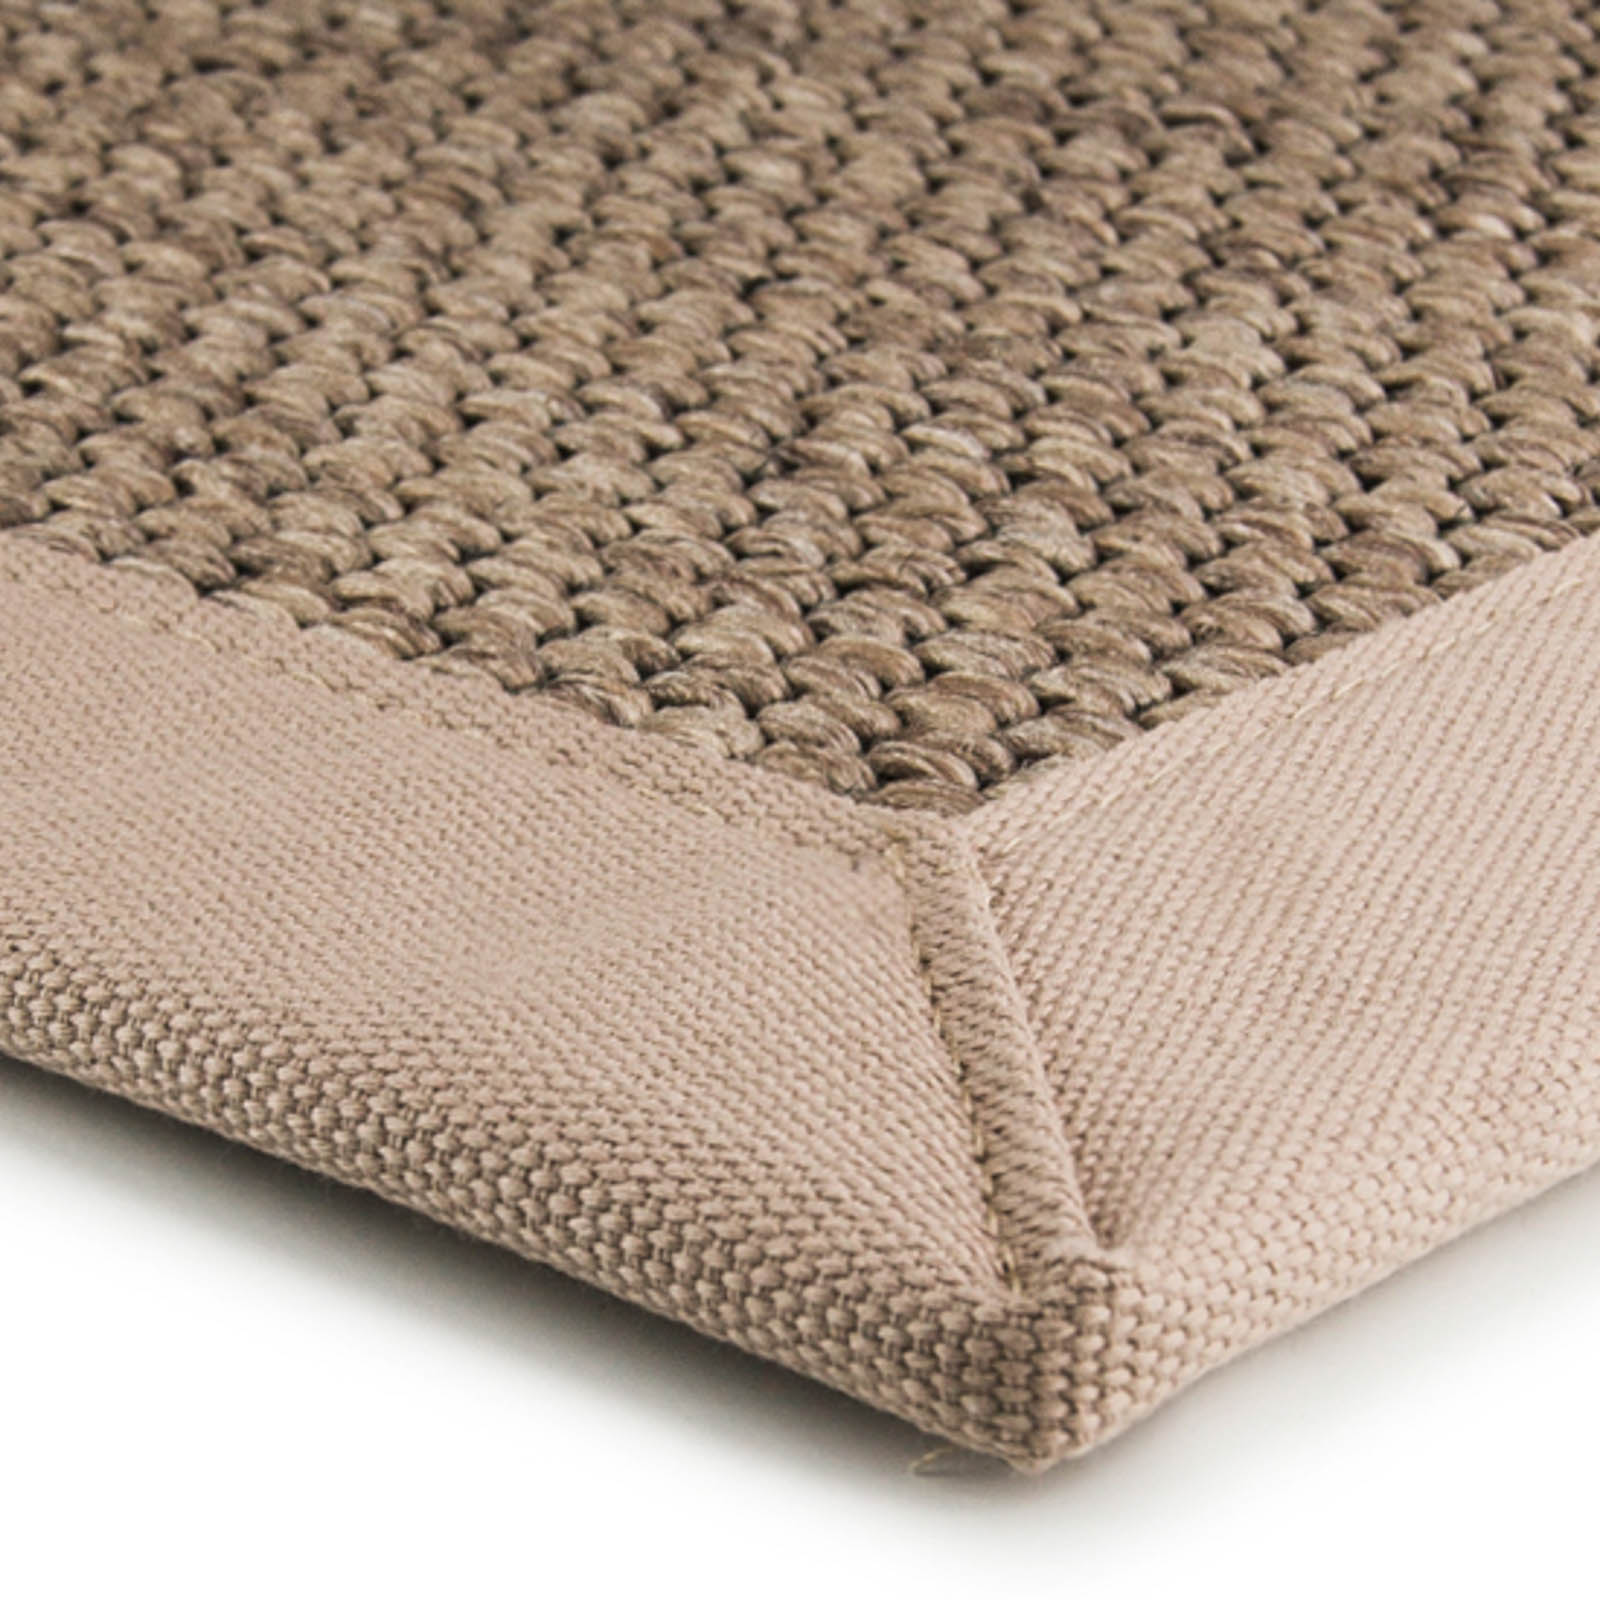 Lima Rugs 3415 in Dark Beige